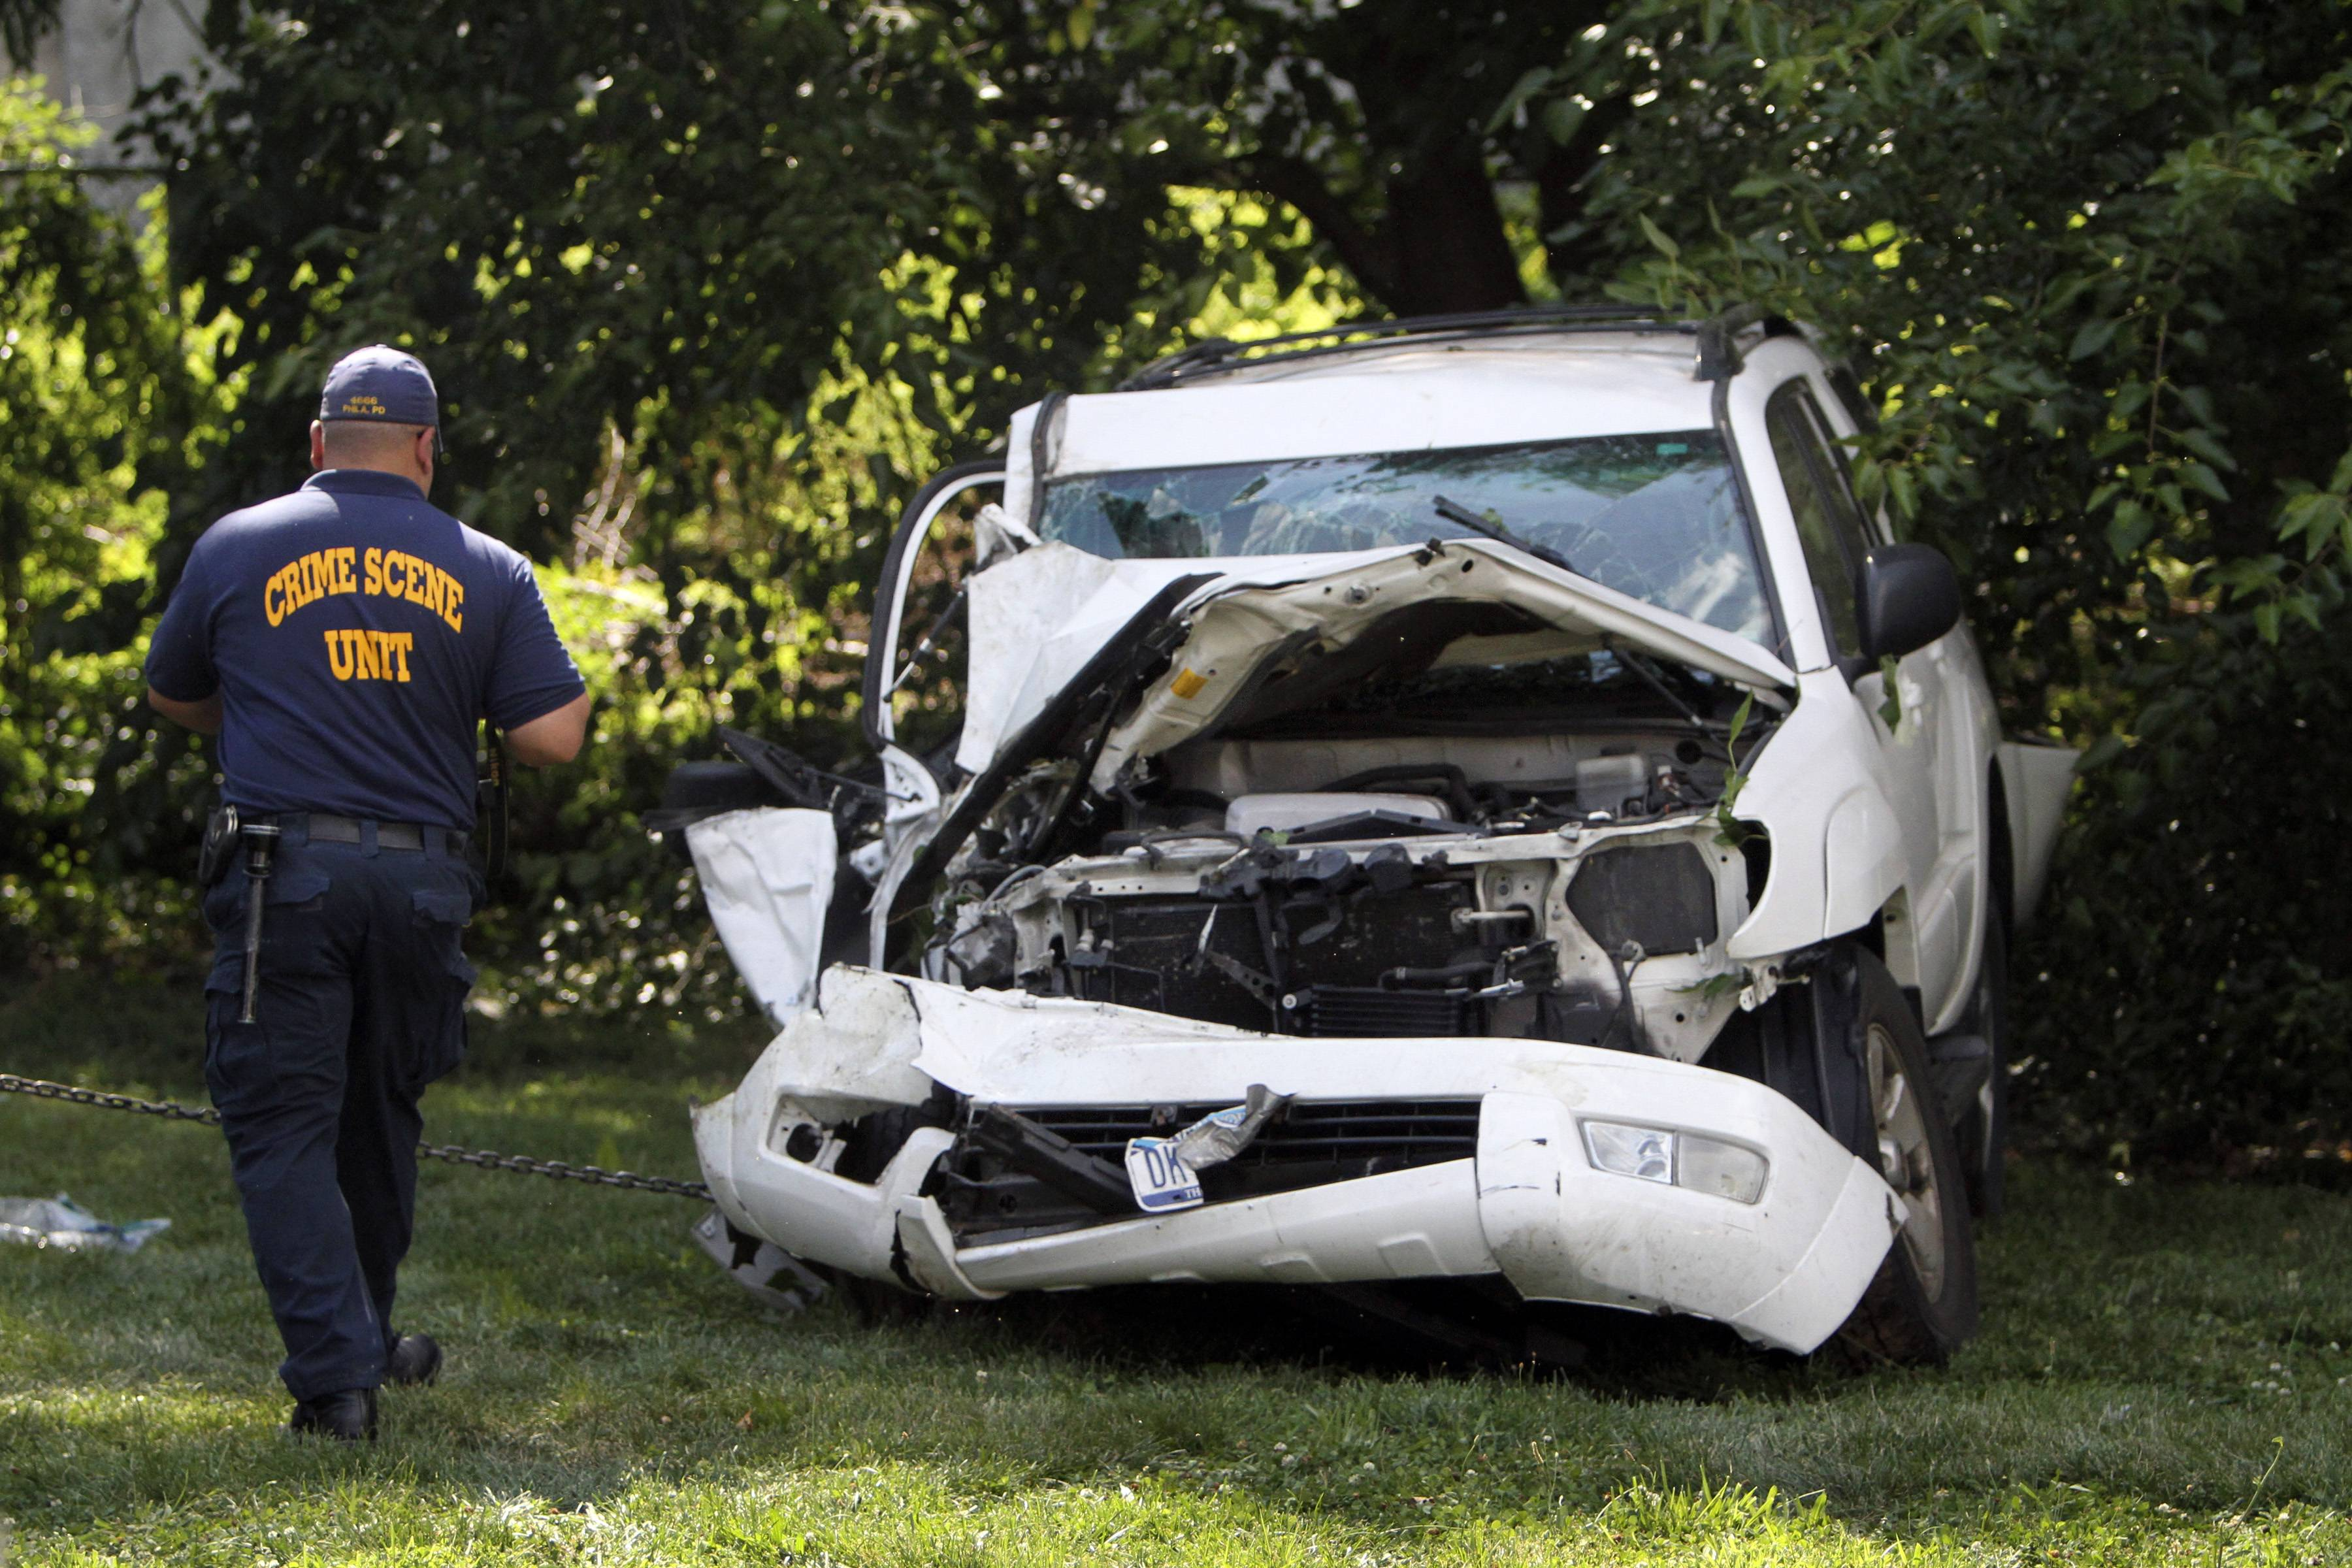 An investigator examines a heavily damaged SUV before it is towed from the scene of a fatal accident in North Philadelphia, Friday July 25. Two children were killed and three people critically injured when a hijacked car lost control and hit a group of people near a fruit stand, according to police.